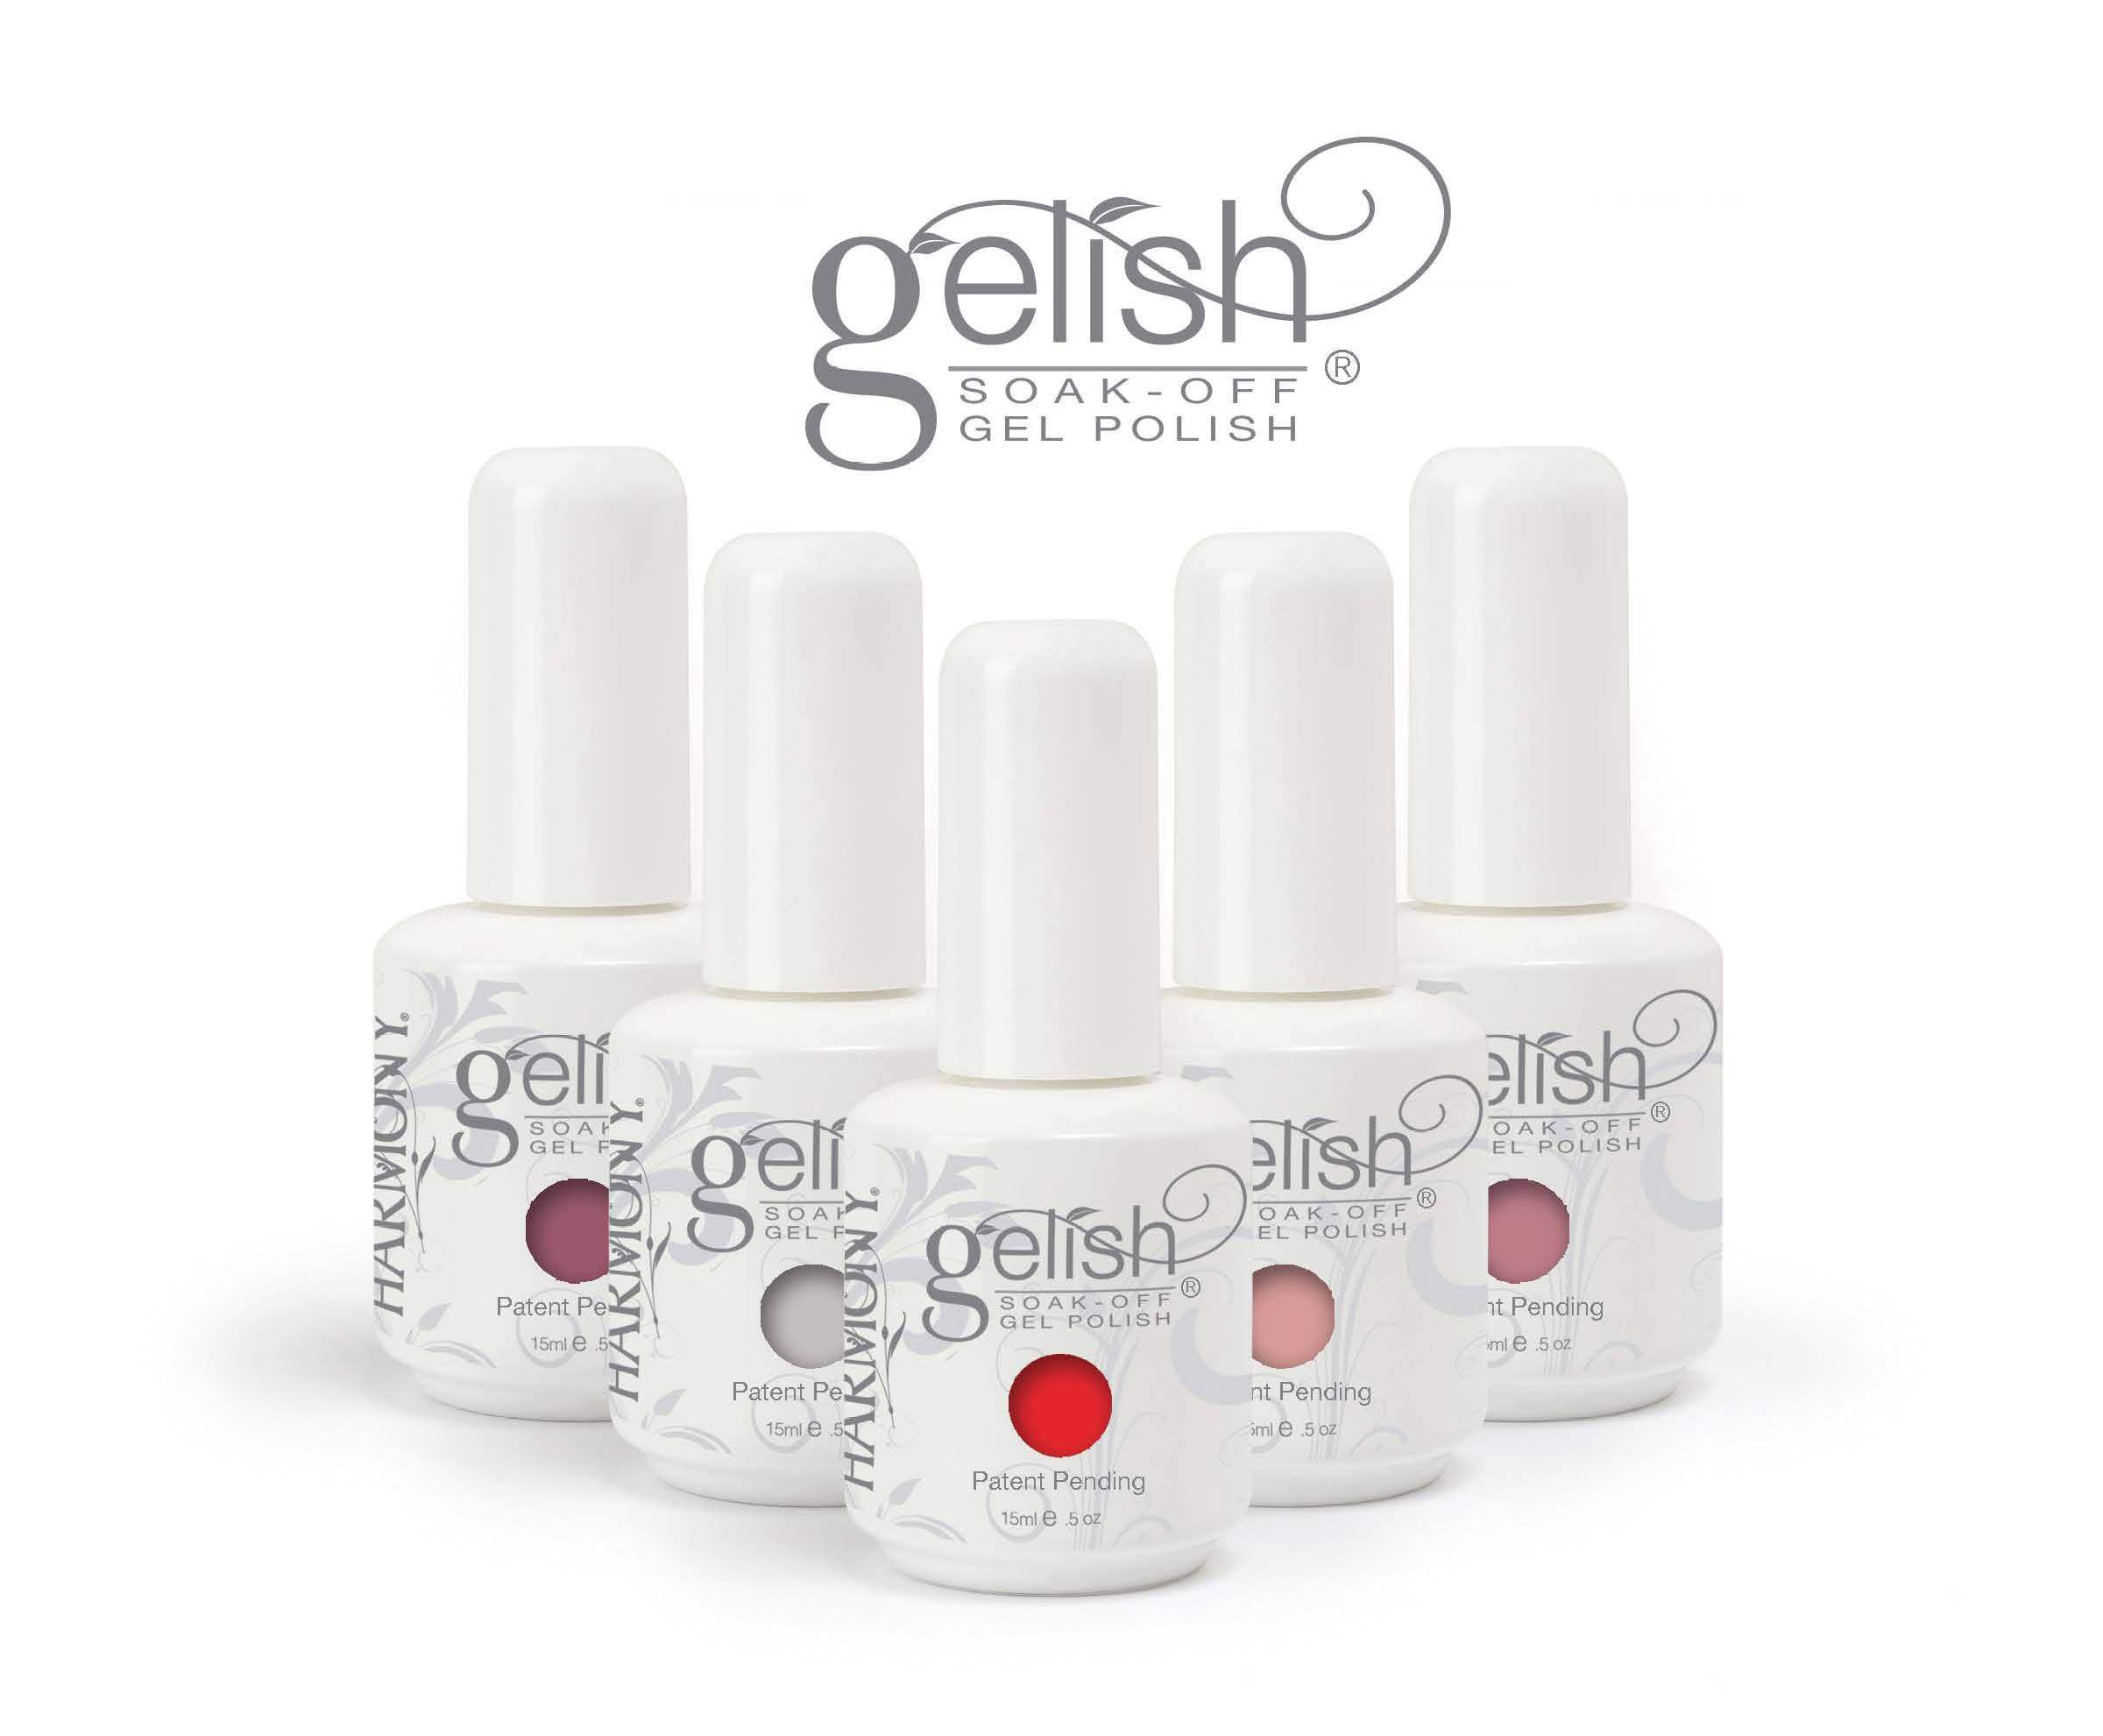 Gelish-producten